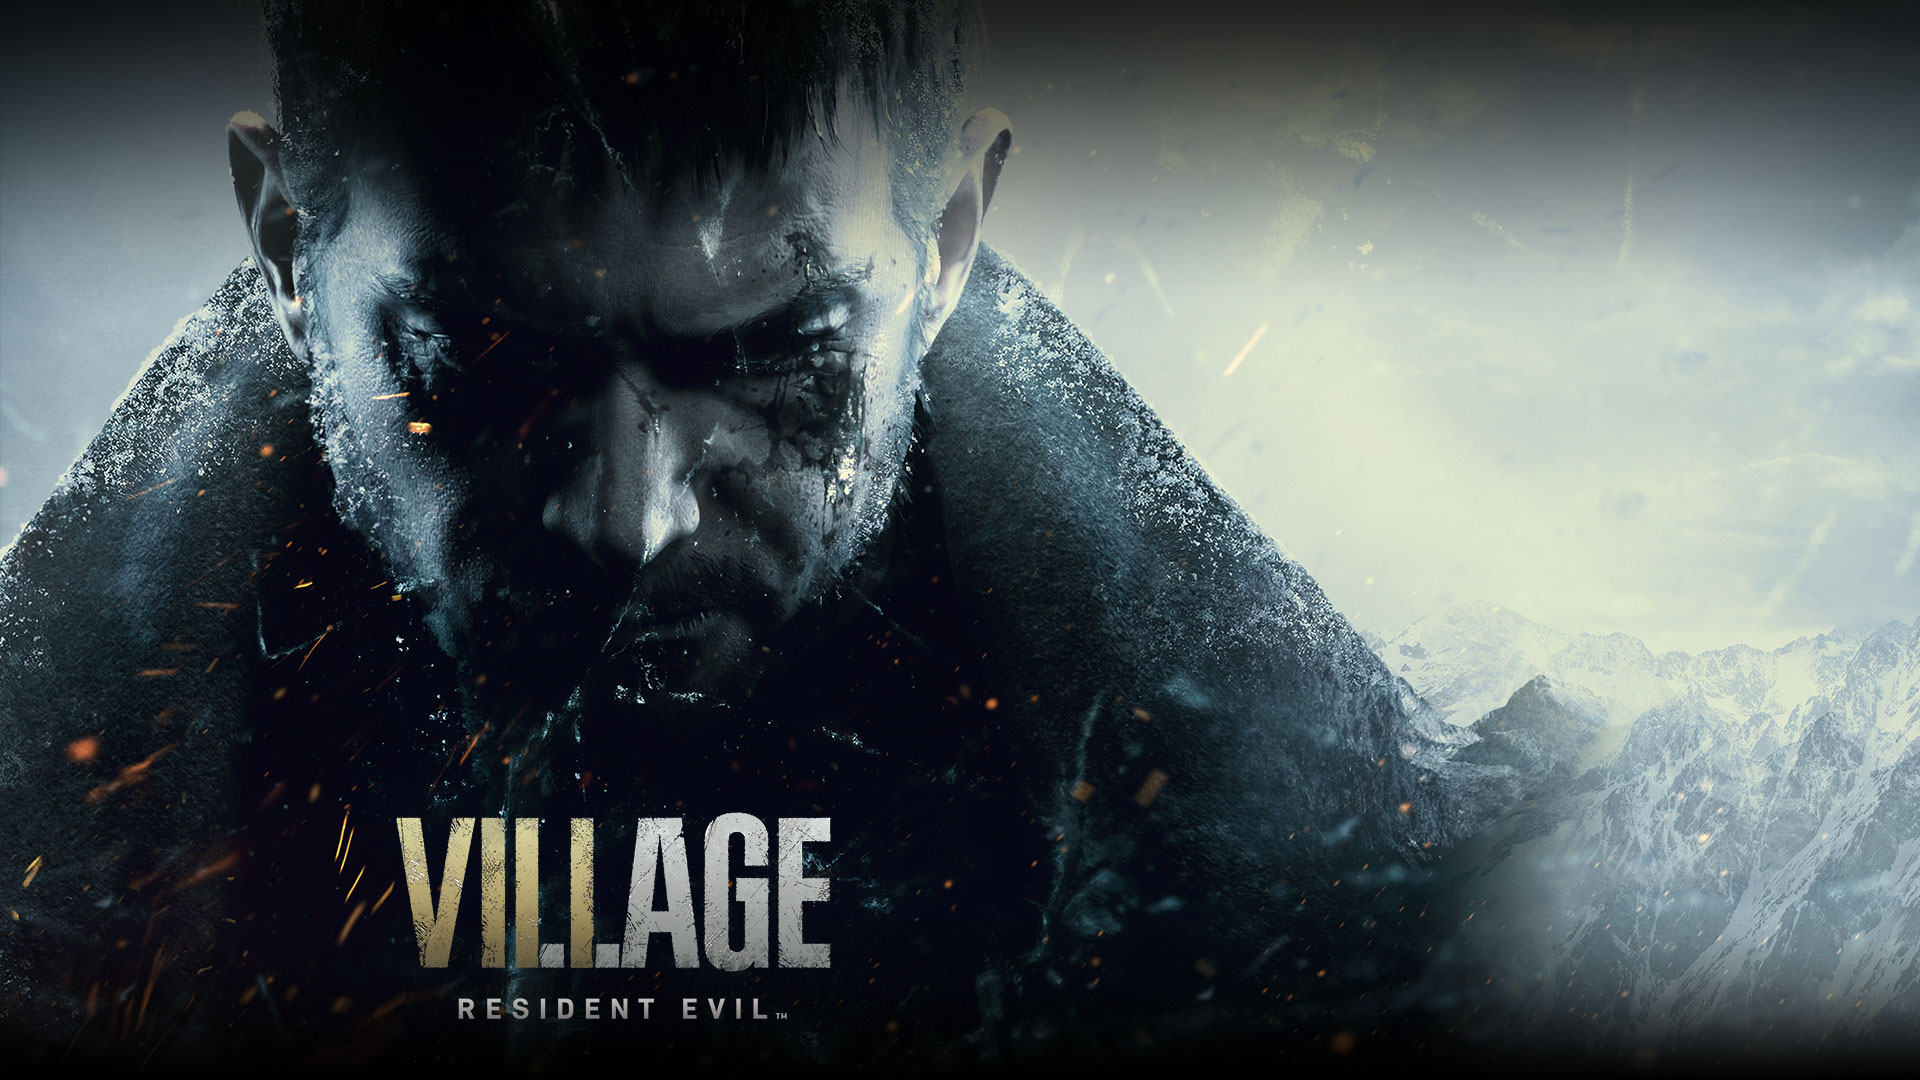 Resident Evil Village, Chris Redfield's somber face on the side of a mountain